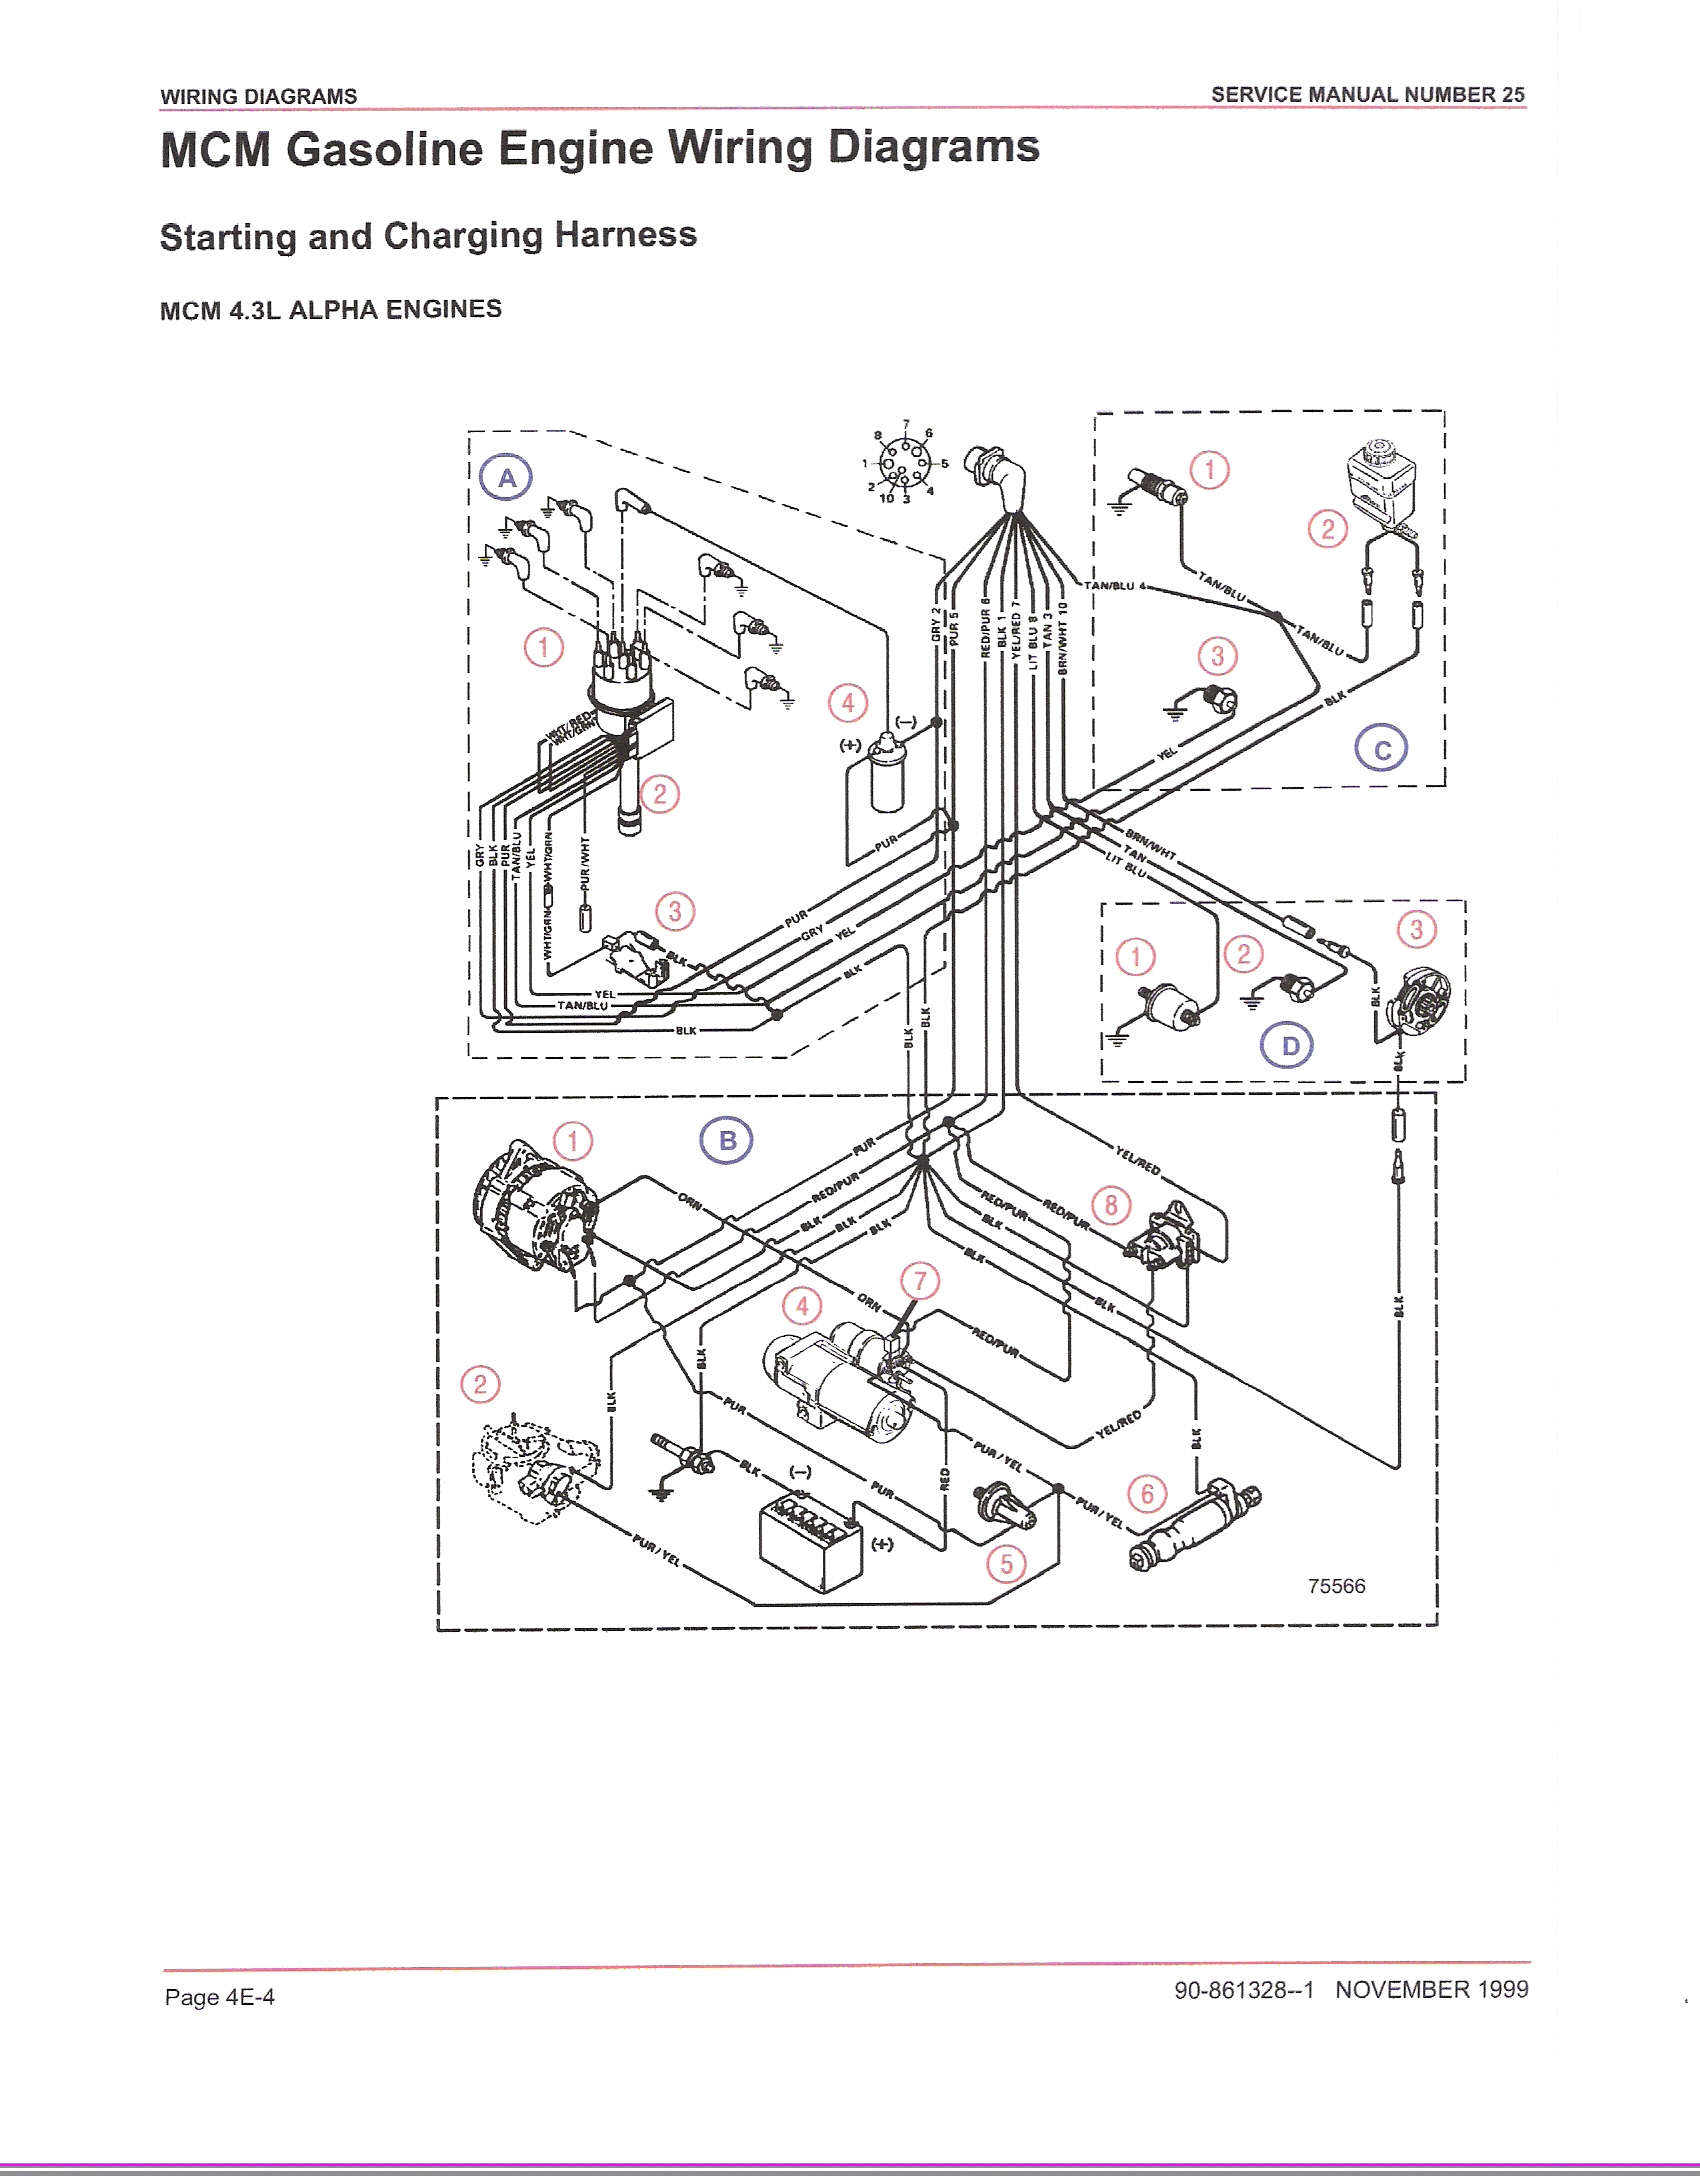 Mercruiser 4 3 Wiring Diagram | Index listing of wiring diagrams on mercruiser 3.0 firing order diagram, mercruiser alpha one diagram, 4.3 mercruiser starter help, 3.7 mercruiser engine diagram, 3 liter mercruiser engine diagram, 4.3 mercruiser starter wiring diagram, 5.7 mercruiser starter wiring diagram, 4.3 mercruiser parts diagram, mercruiser trim wiring diagram, mercruiser 5.7 engine diagram, 470 mercruiser coil wiring diagram, 4.3 mercruiser solenoid wiring, boat ignition switch wiring diagram, mercruiser alternator wiring diagram, 350 5.7 engine diagram, mercruiser wiring harness diagram, mercruiser 3.0 parts diagram, gm ignition switch wiring diagram, 170 mercruiser engine diagram, mercruiser engine parts diagram,